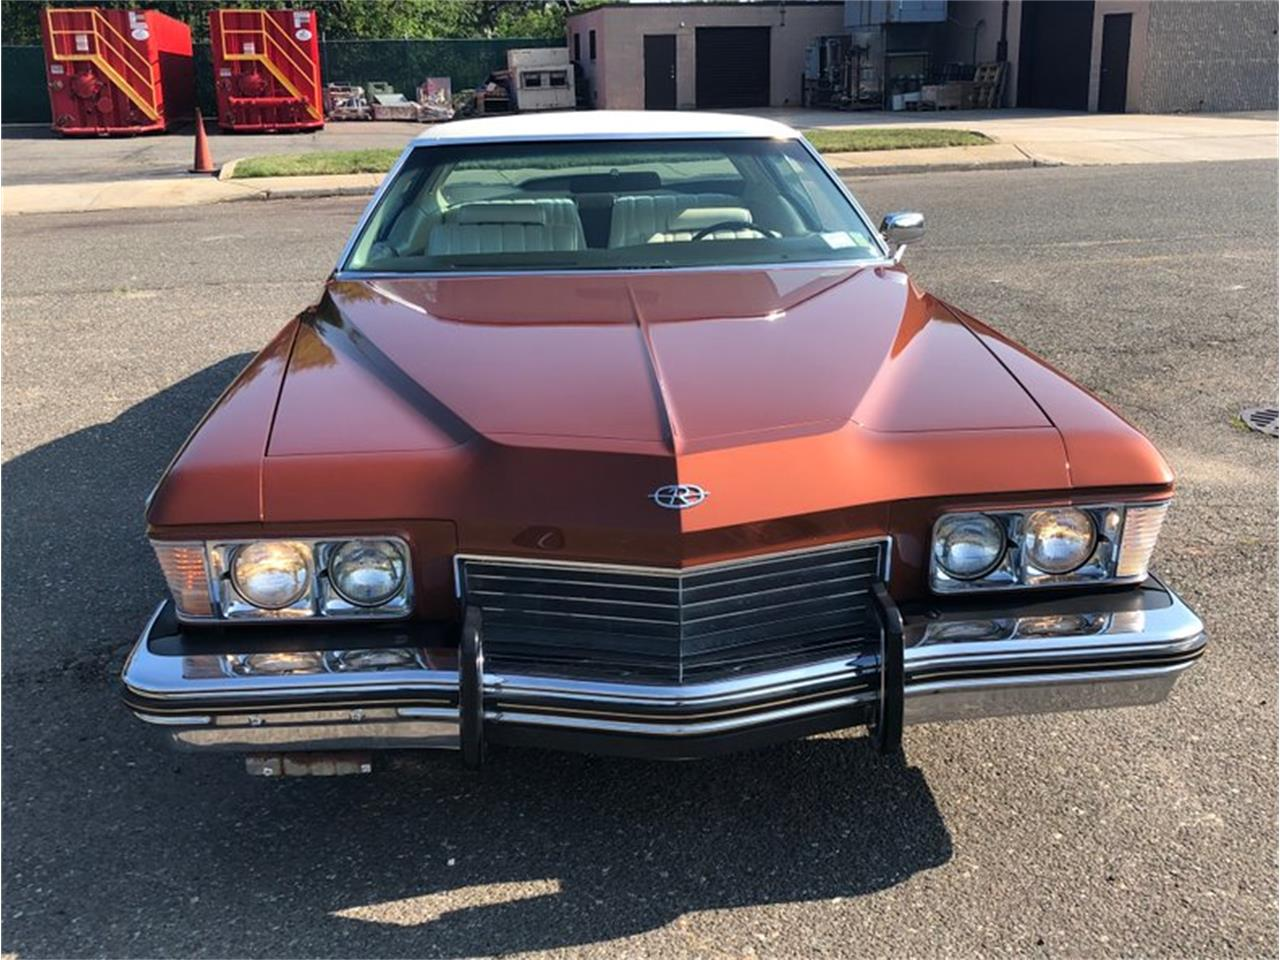 Large Picture of Classic 1973 Buick Riviera - $24,900.00 Offered by Hollywood Motors - NVQM